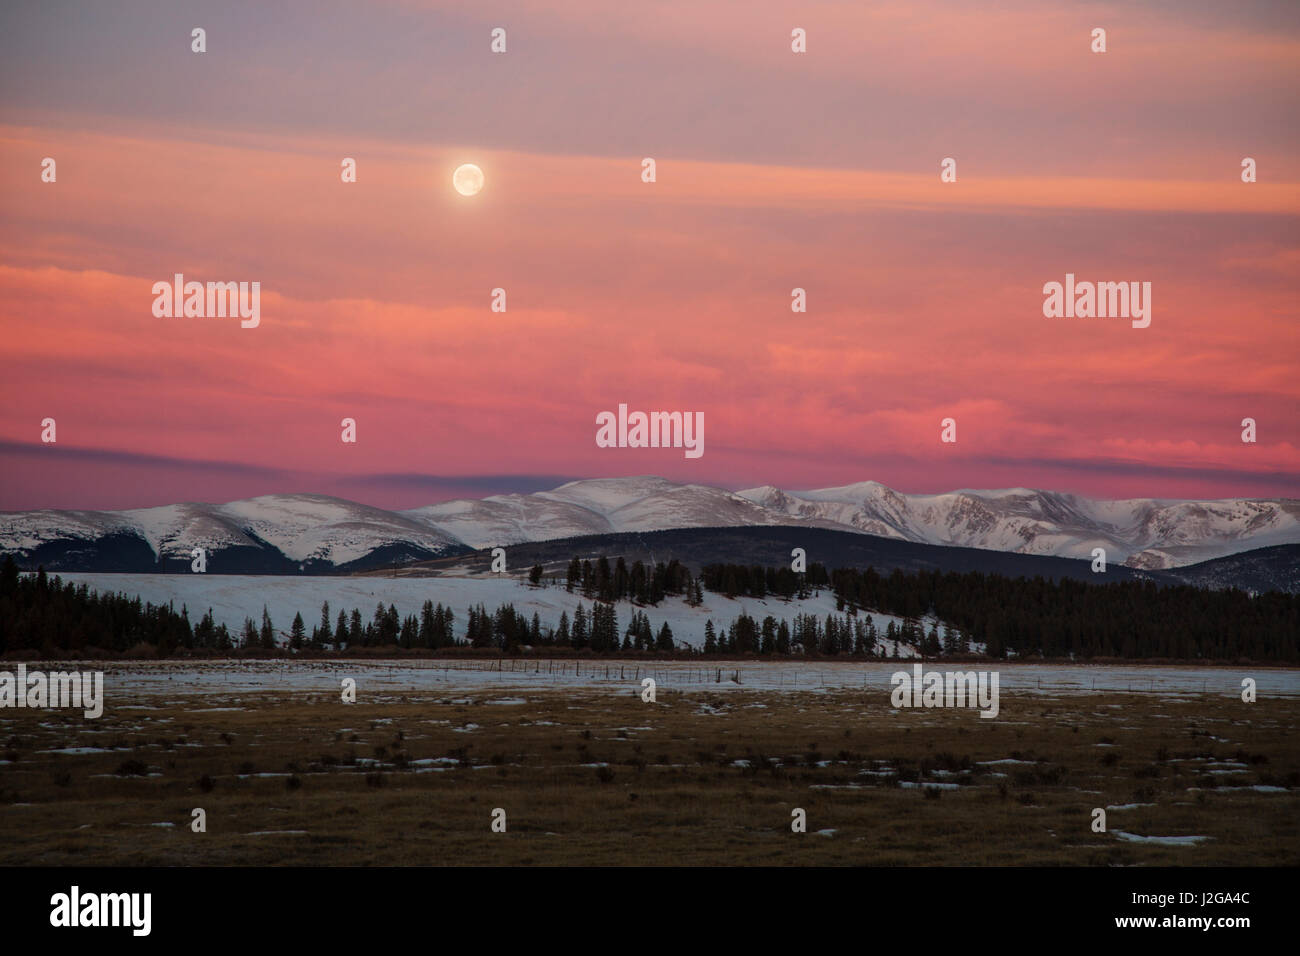 USA, Colorado. Setting full moon and alpenglow above Mosquito Range. Credit as: Don Grall / Jaynes Gallery / DanitaDelimont.com - Stock Image